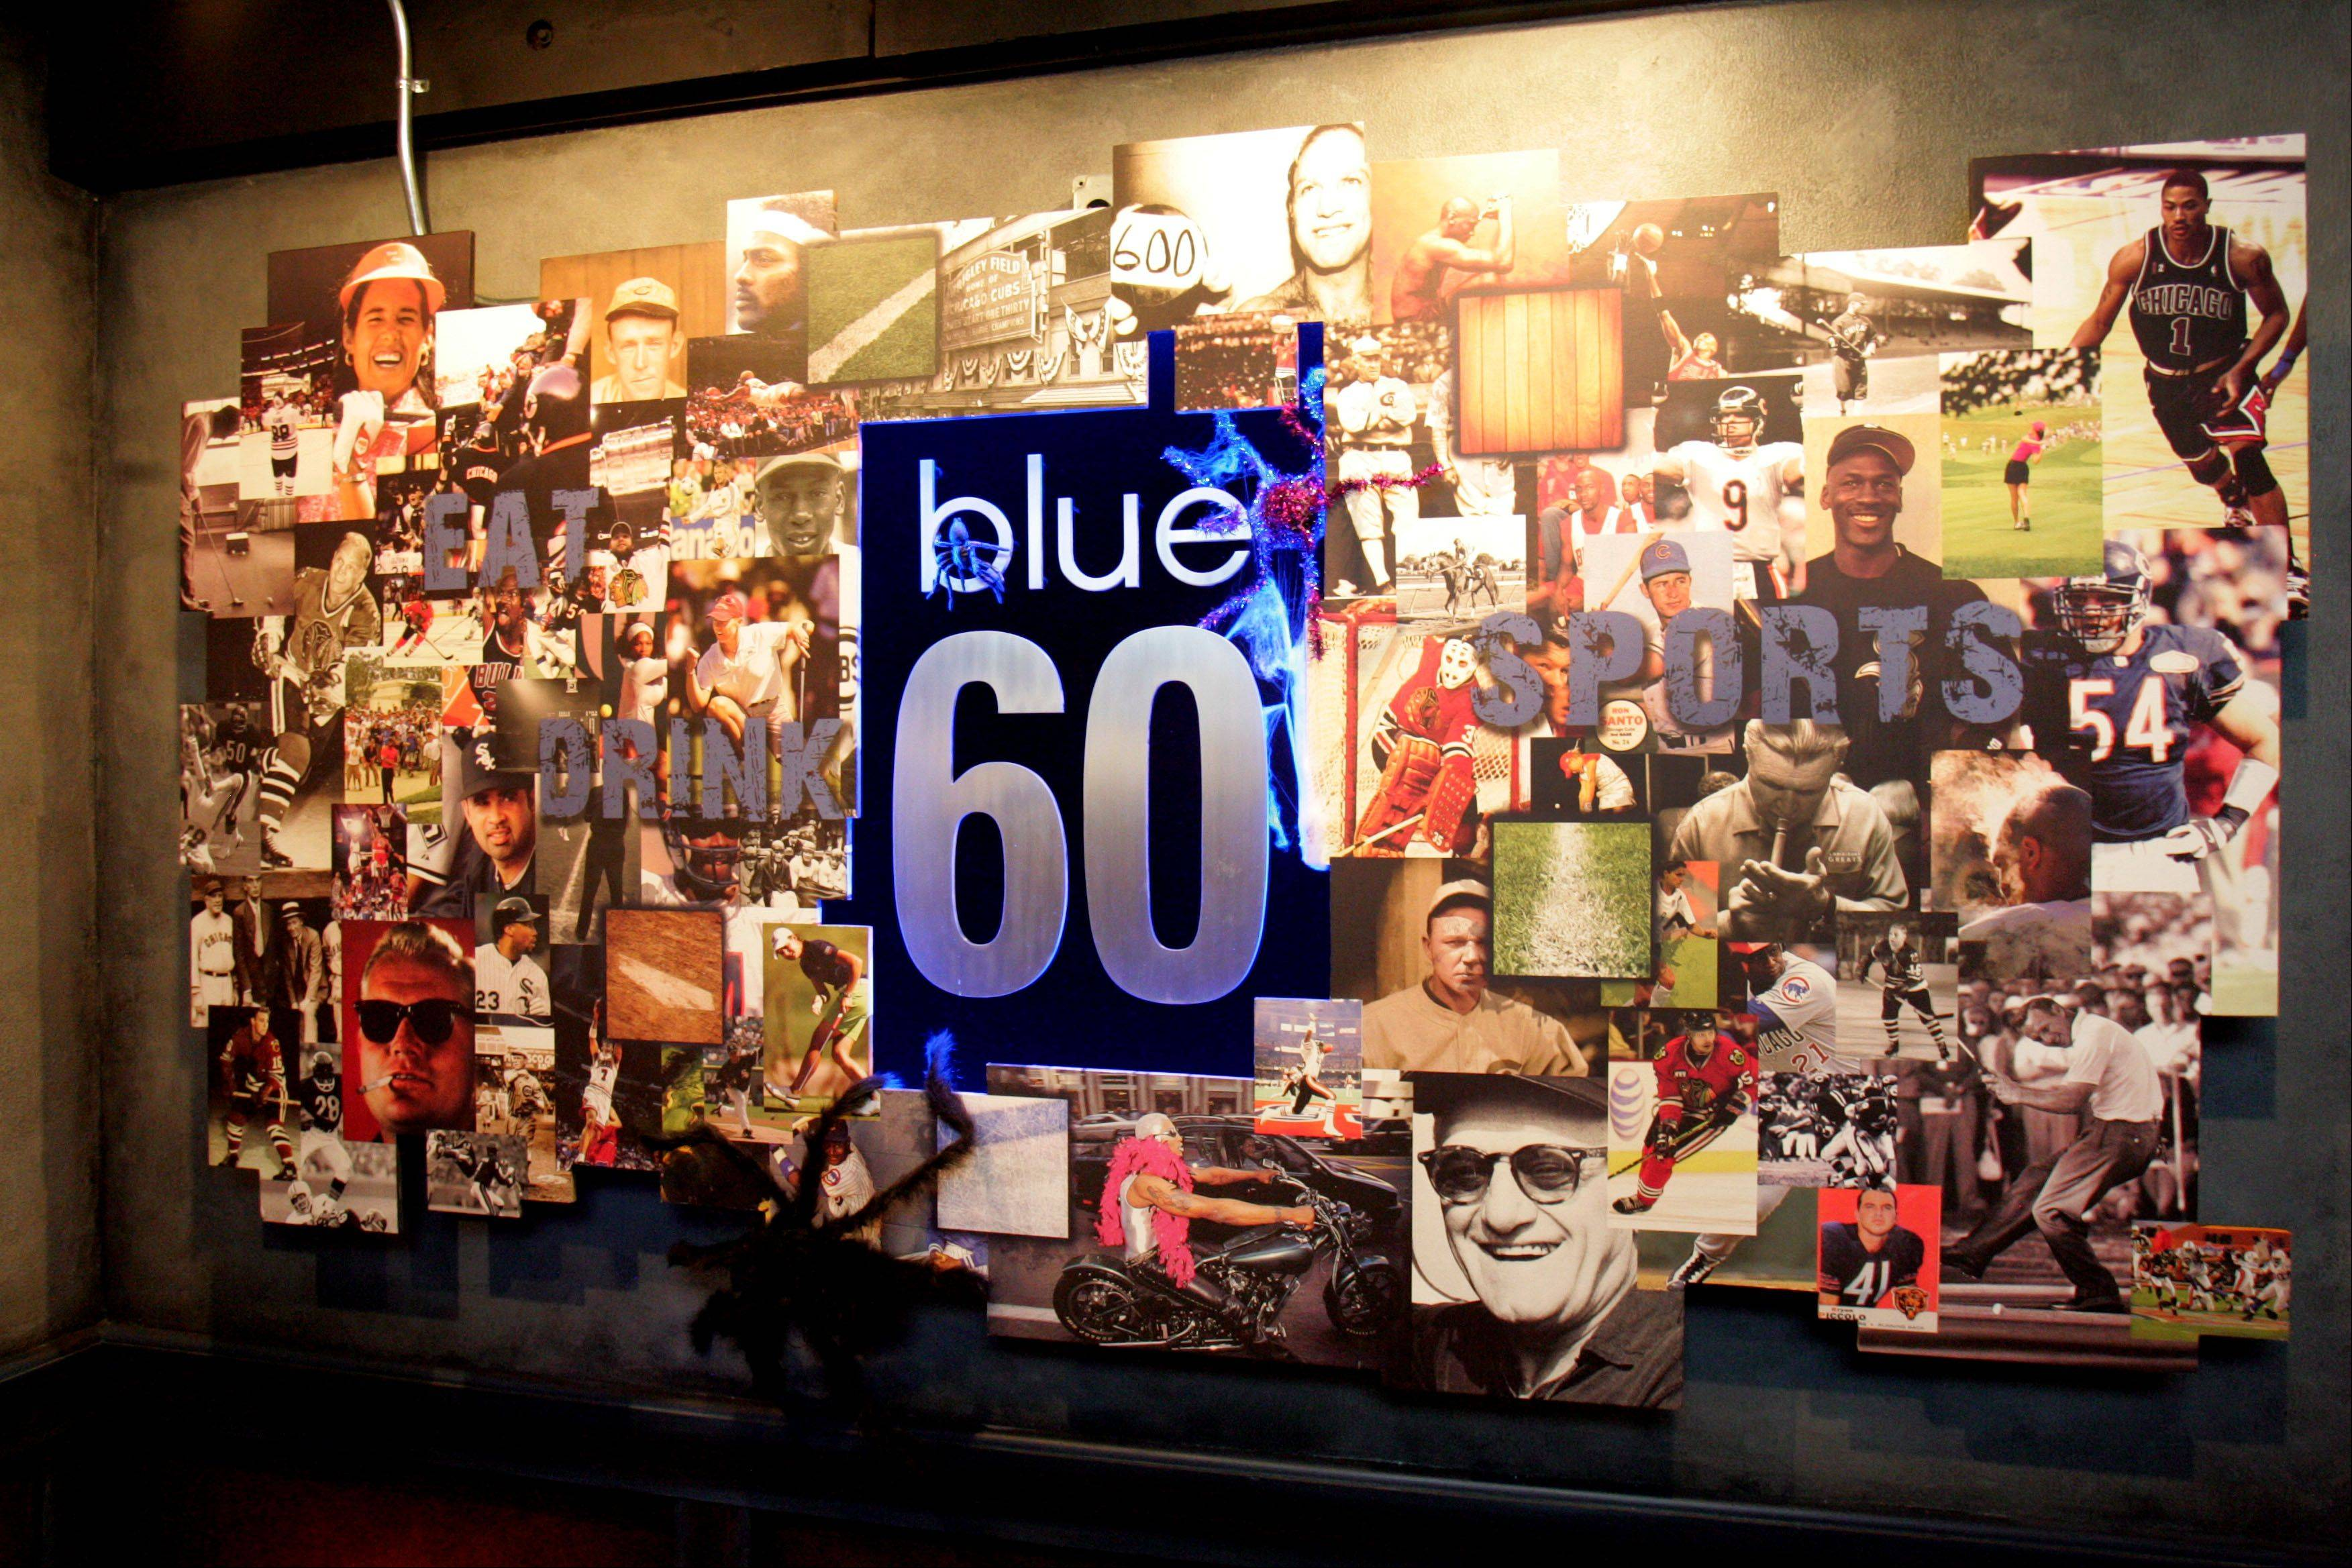 Blue 60 pays tribute to historic sports moments and athletes.